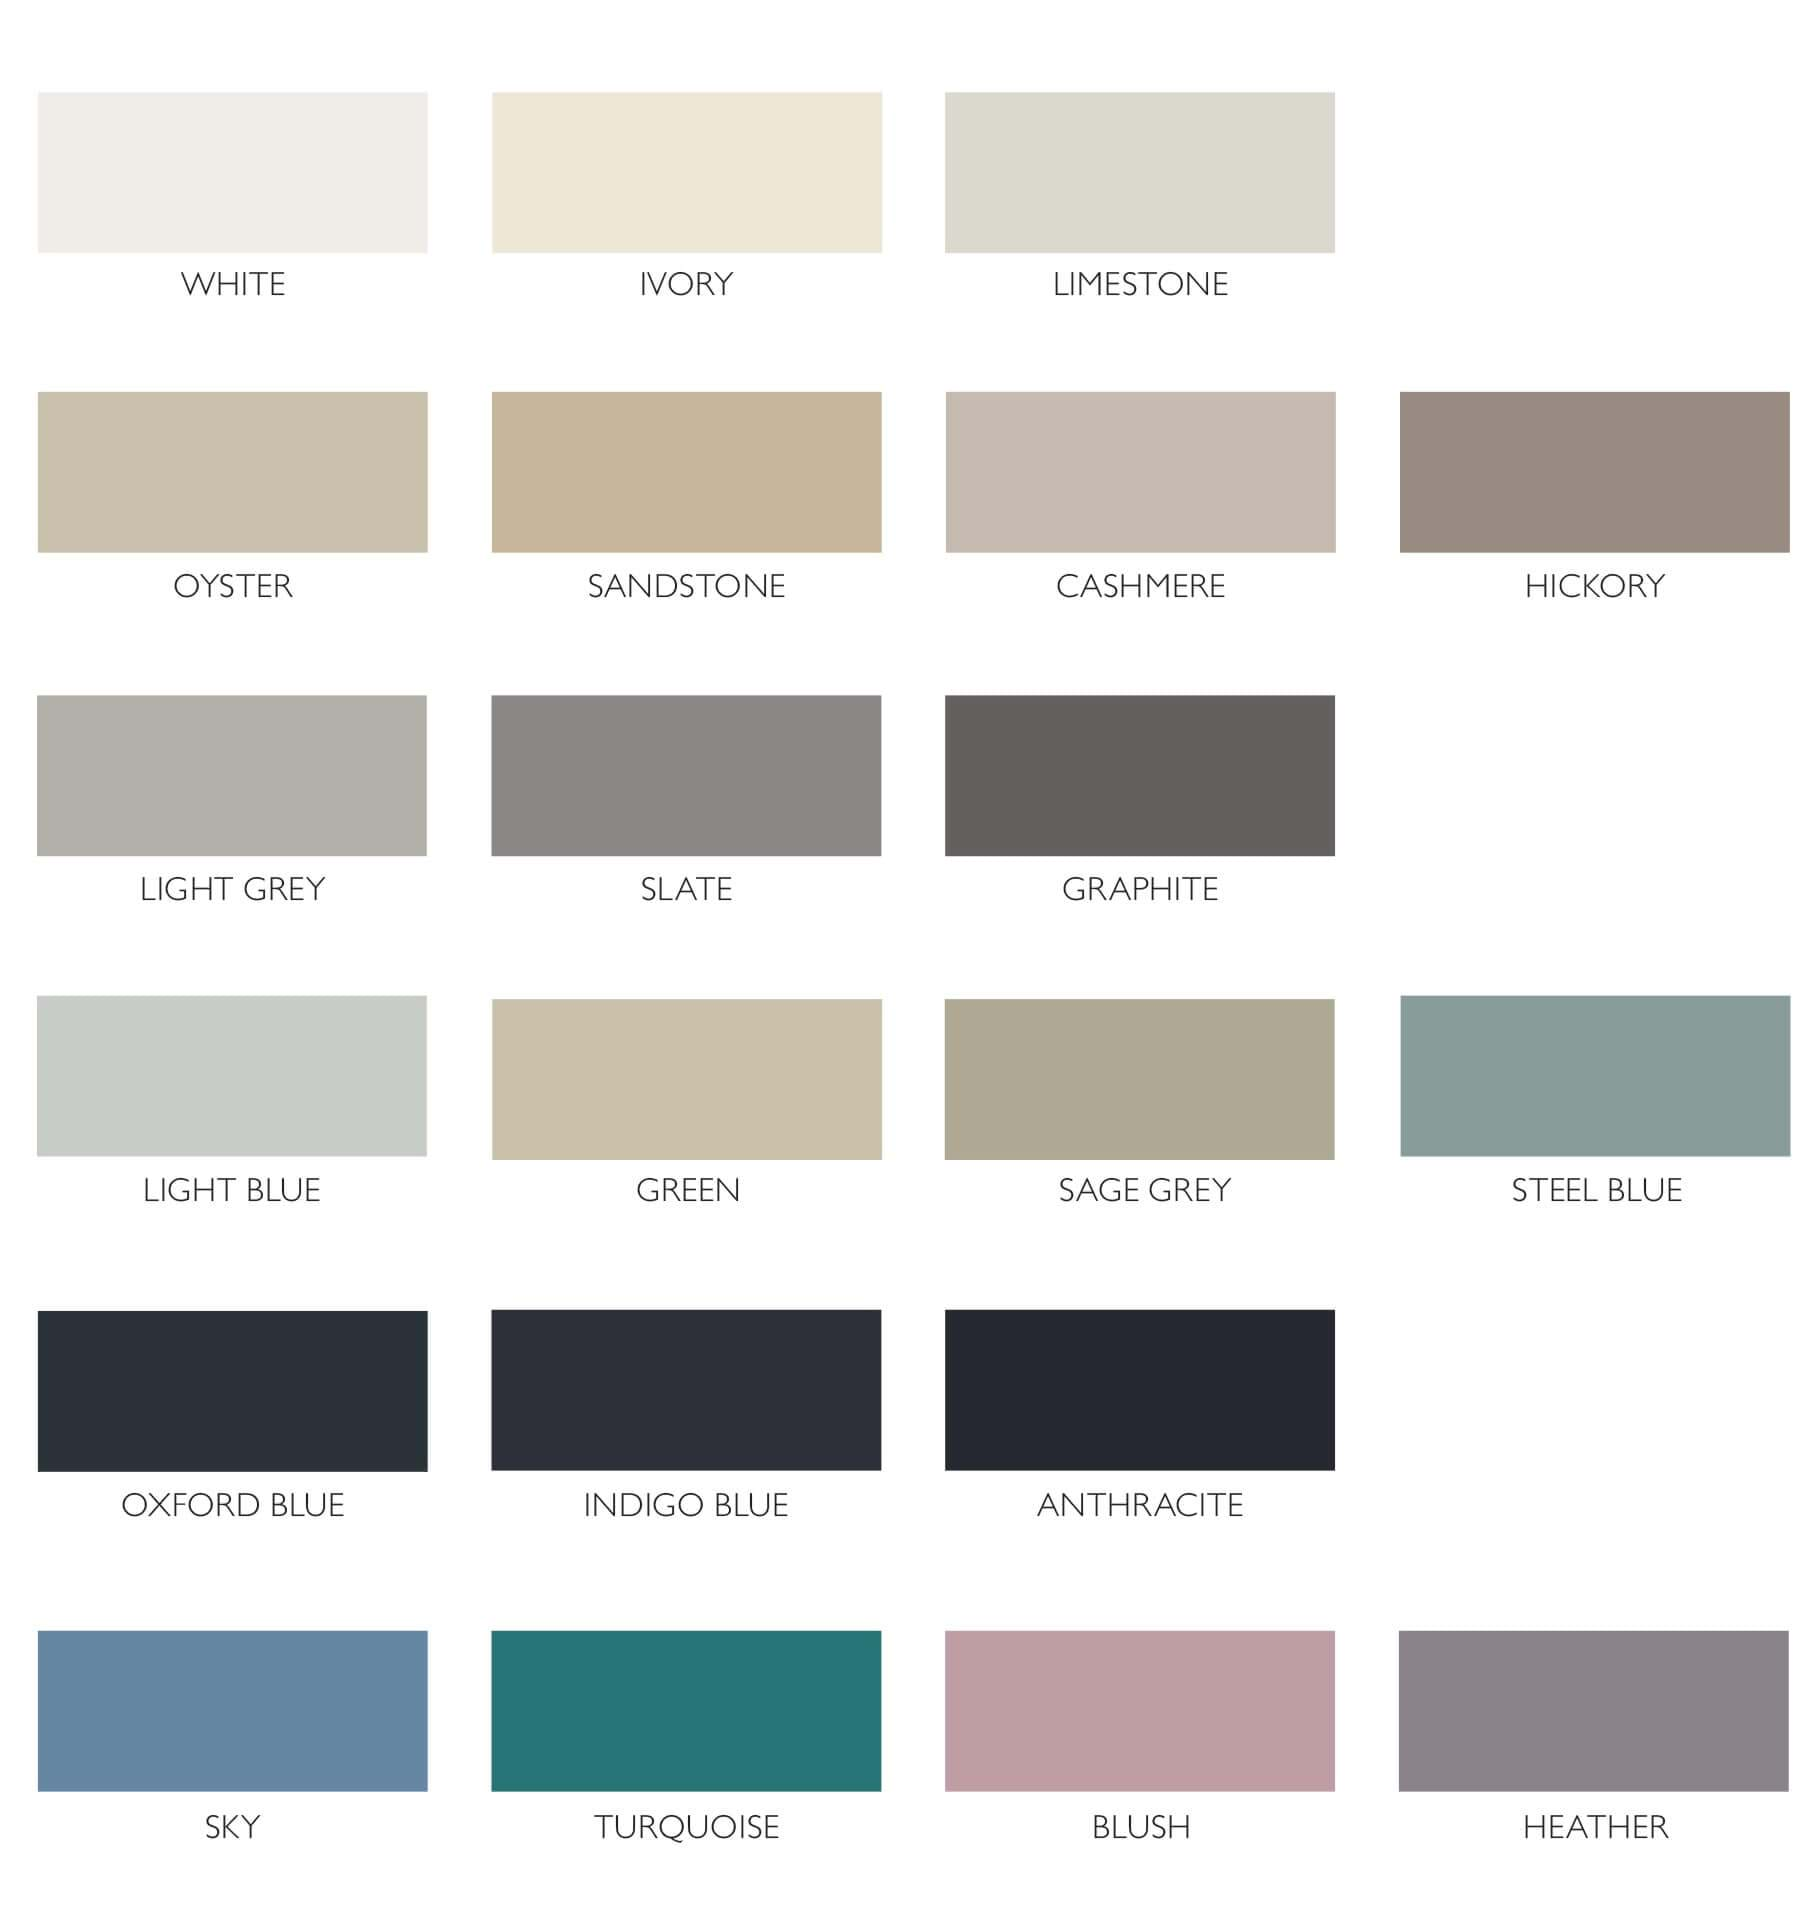 Sheraton colour swatches